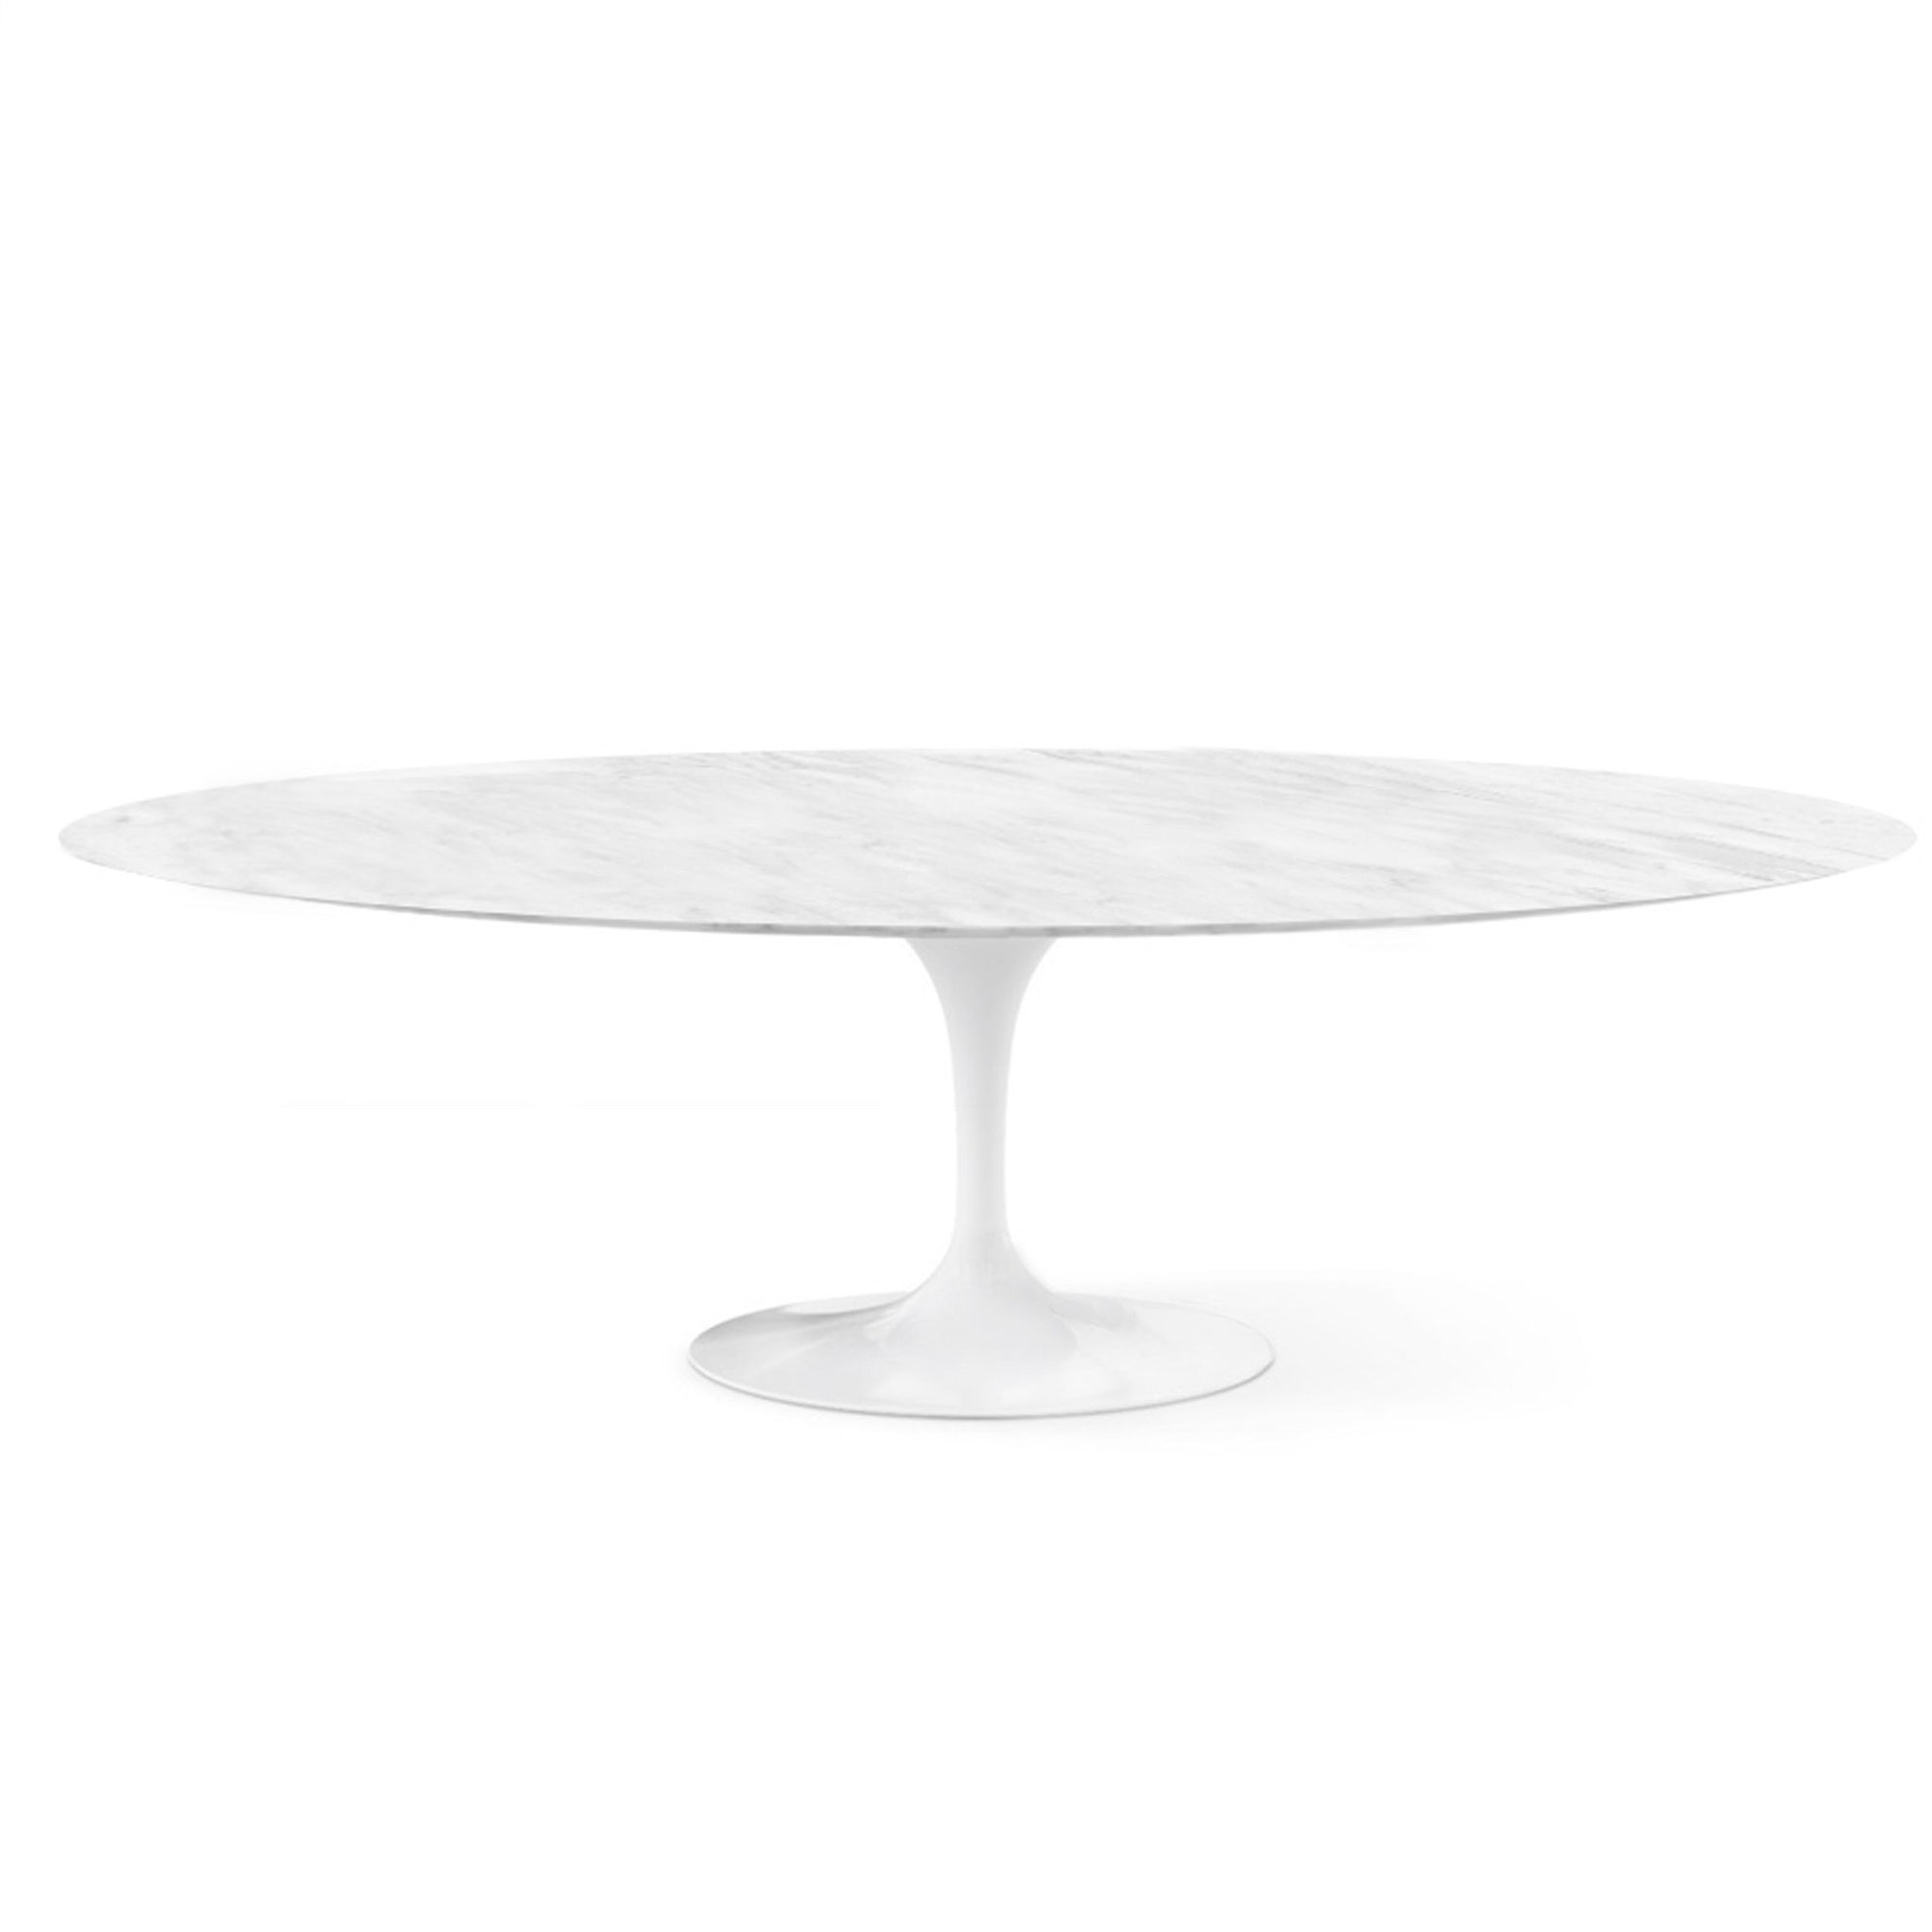 Dinning Table - Natural Marble Oval  Dining Table 160 Cm  BP-T083160